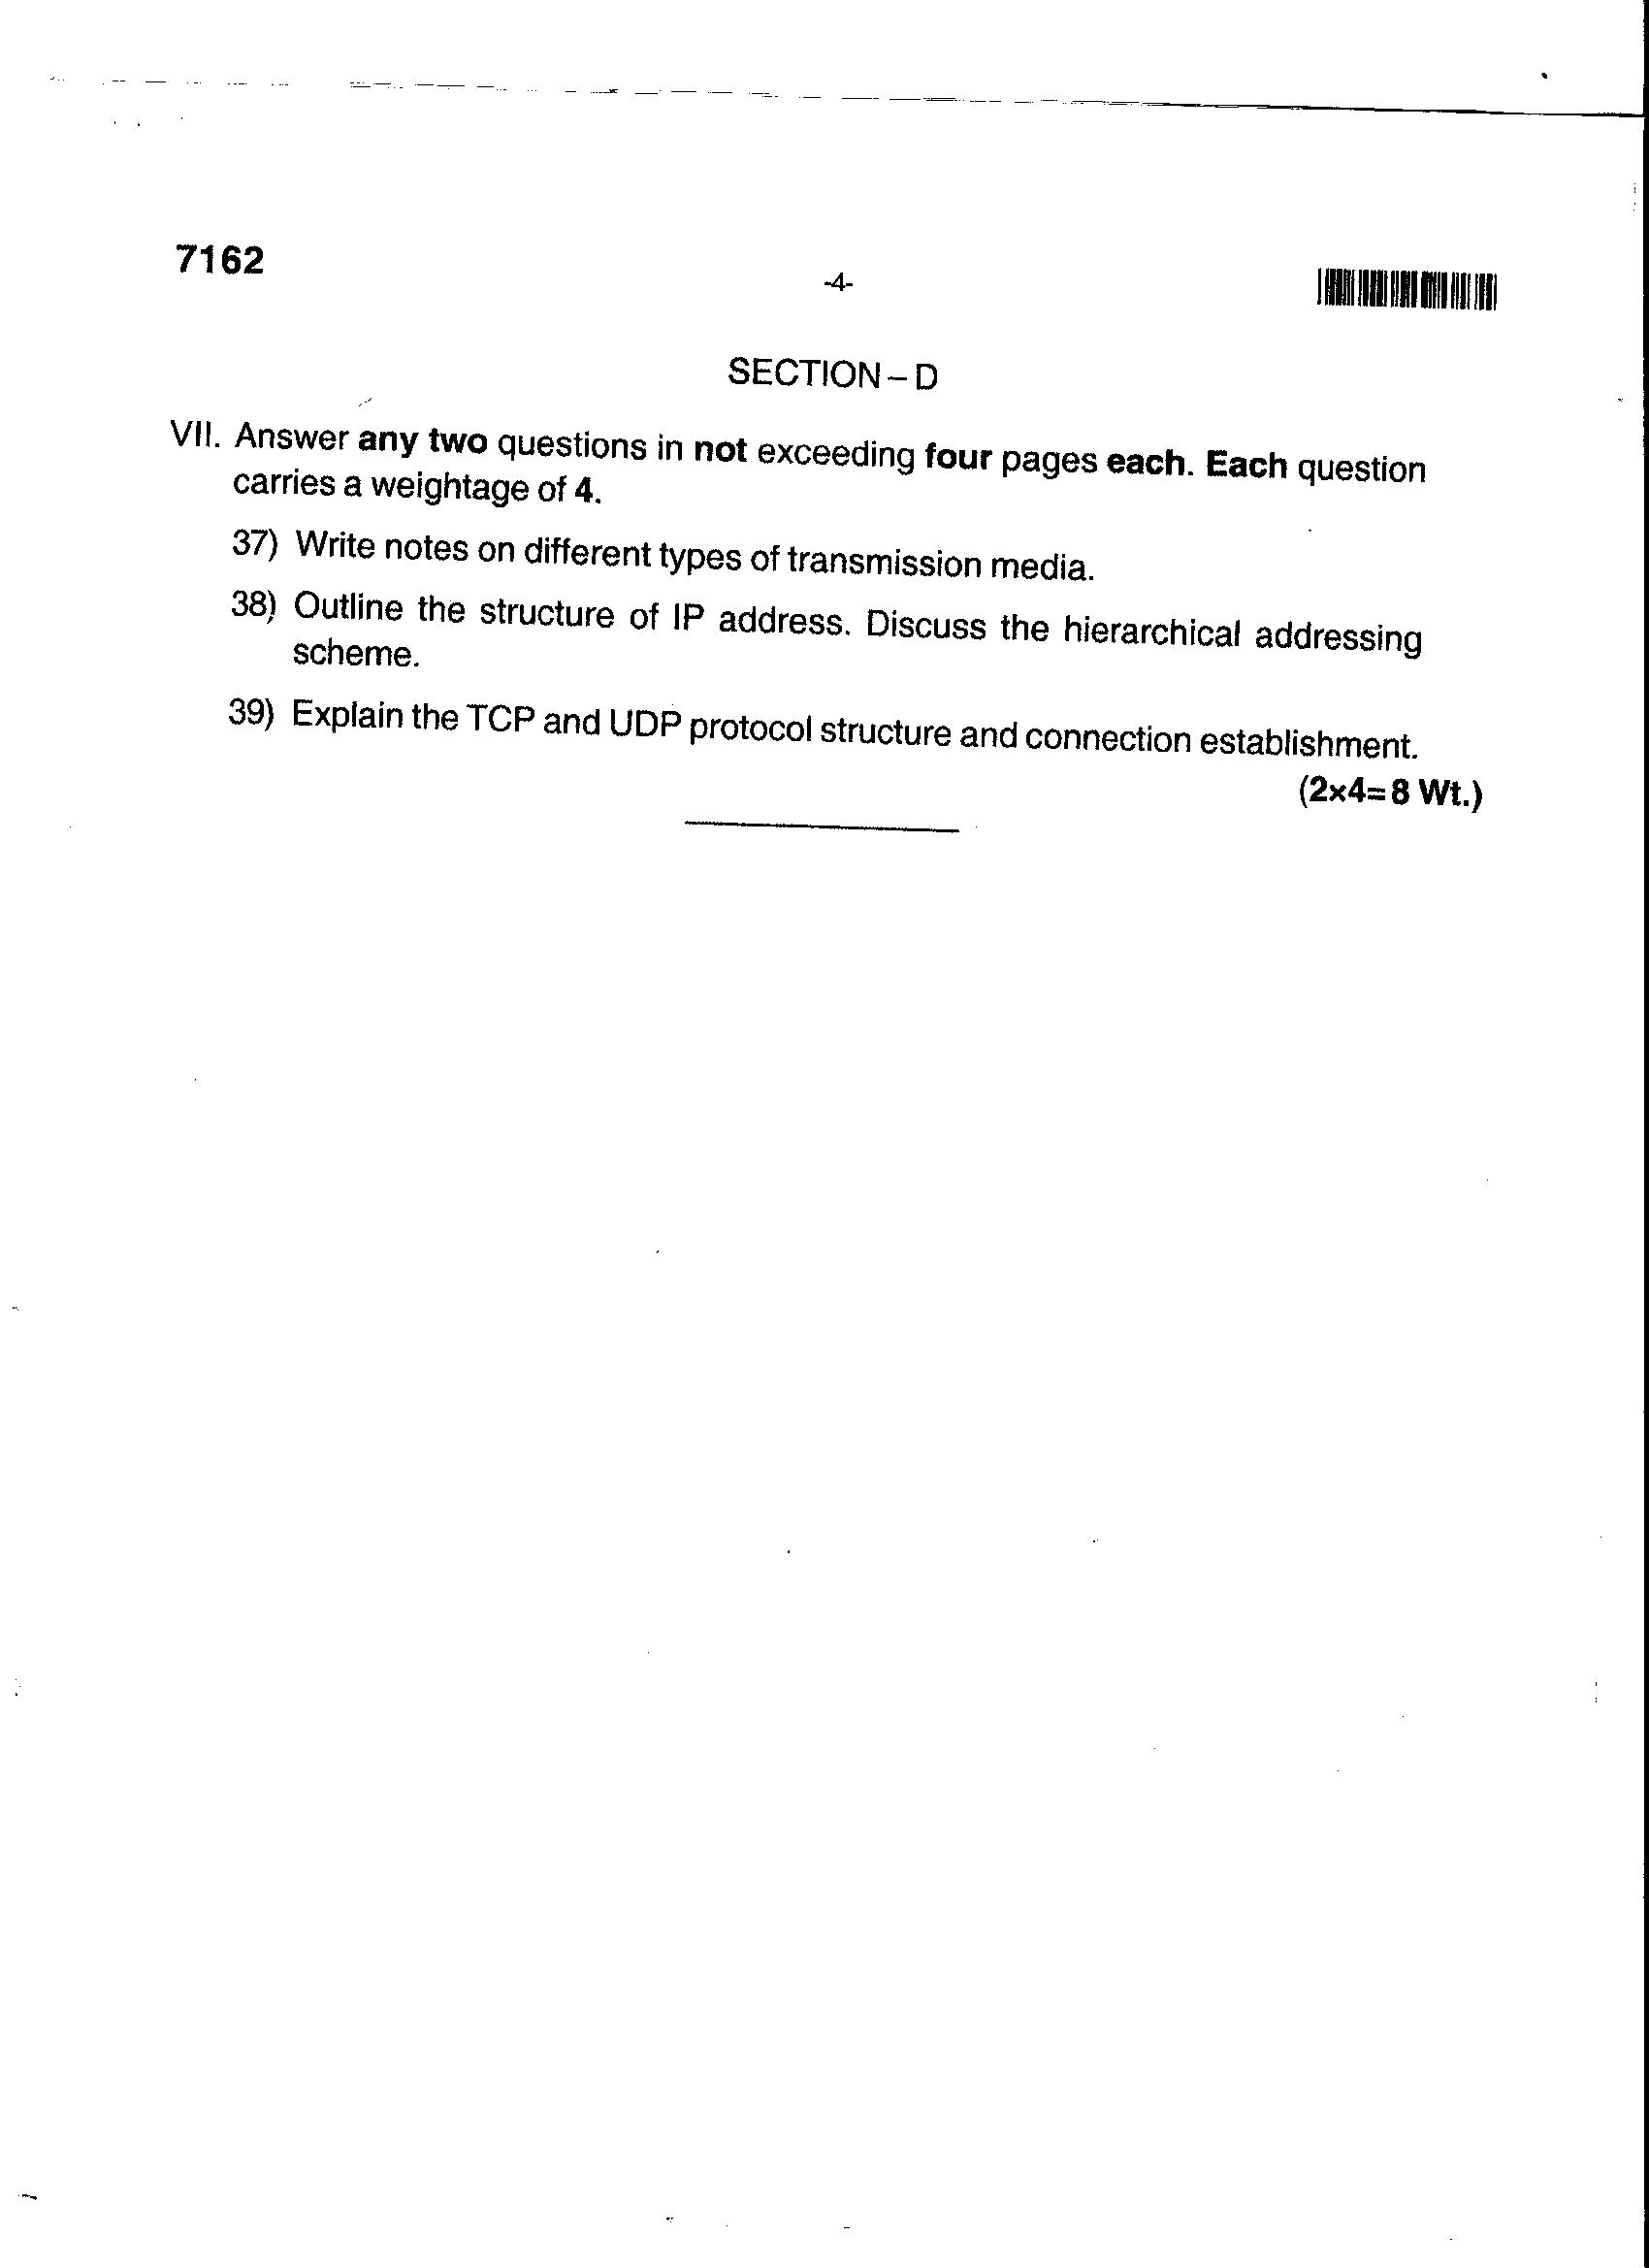 mba 4th sem question paper ptu last 3 years Download btech last year question papers of utu(uttarakhand technical university) get question paper of any year for cse, ece, eee, me, civil and more branch for all.